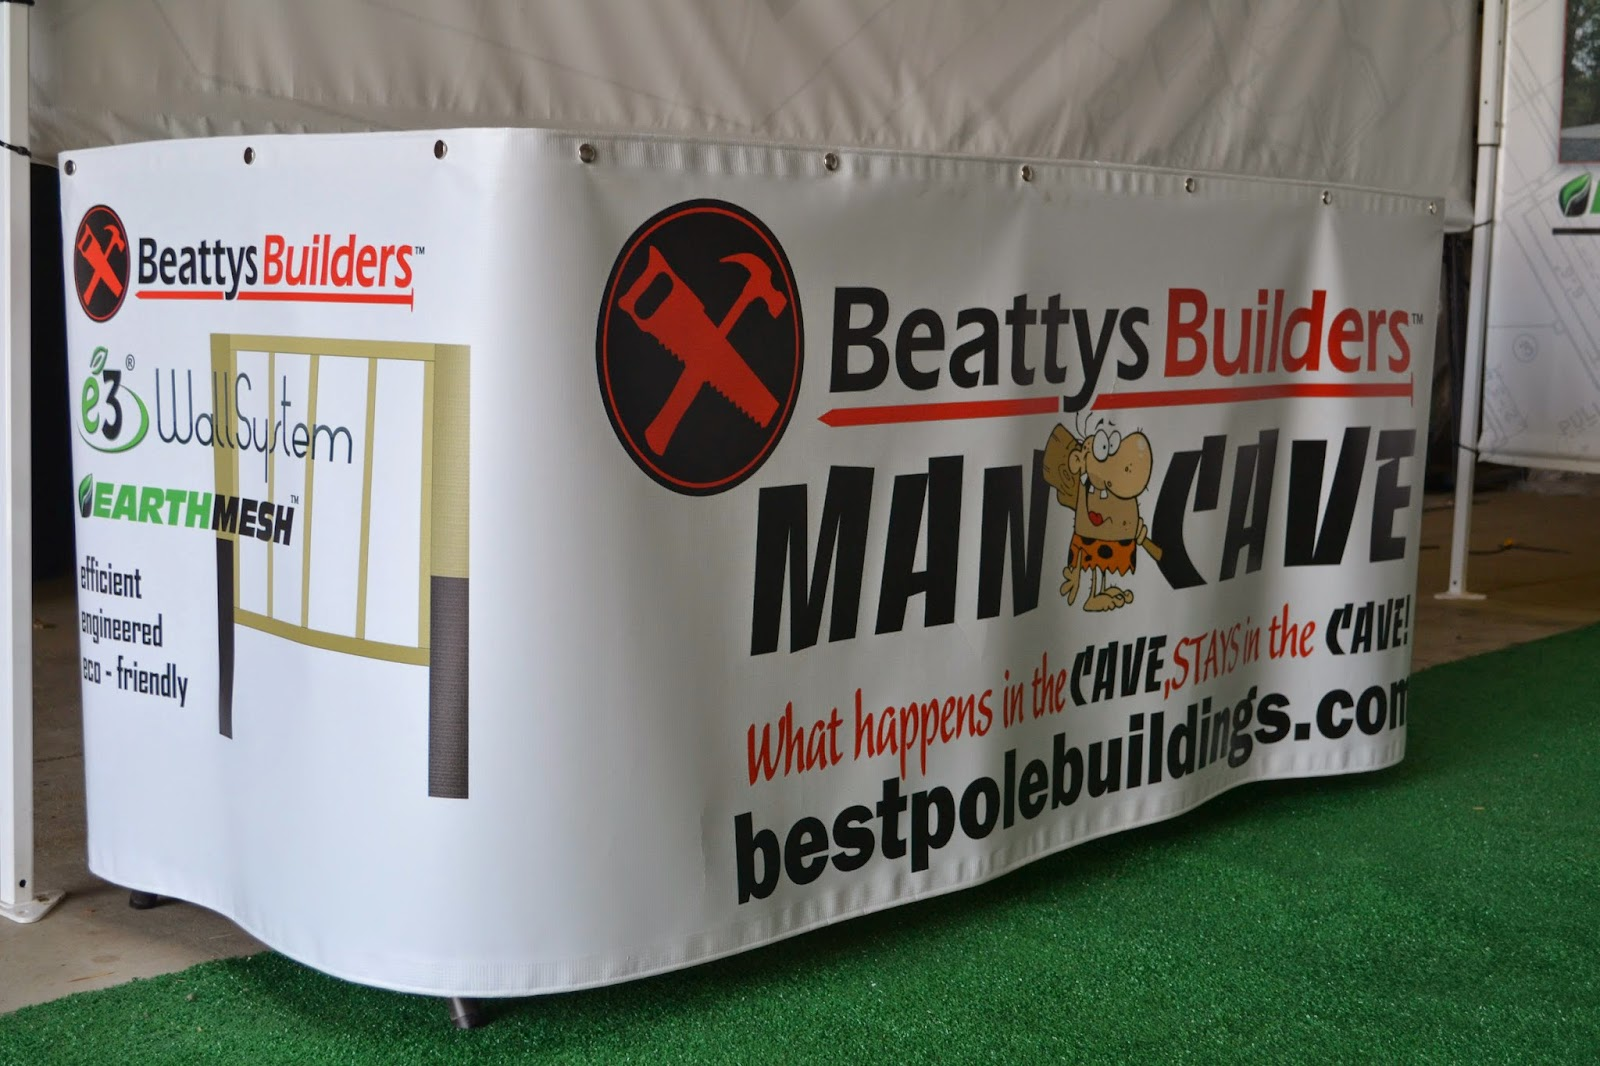 Banner for Beattys Builders Trade Show Display | Banners.com